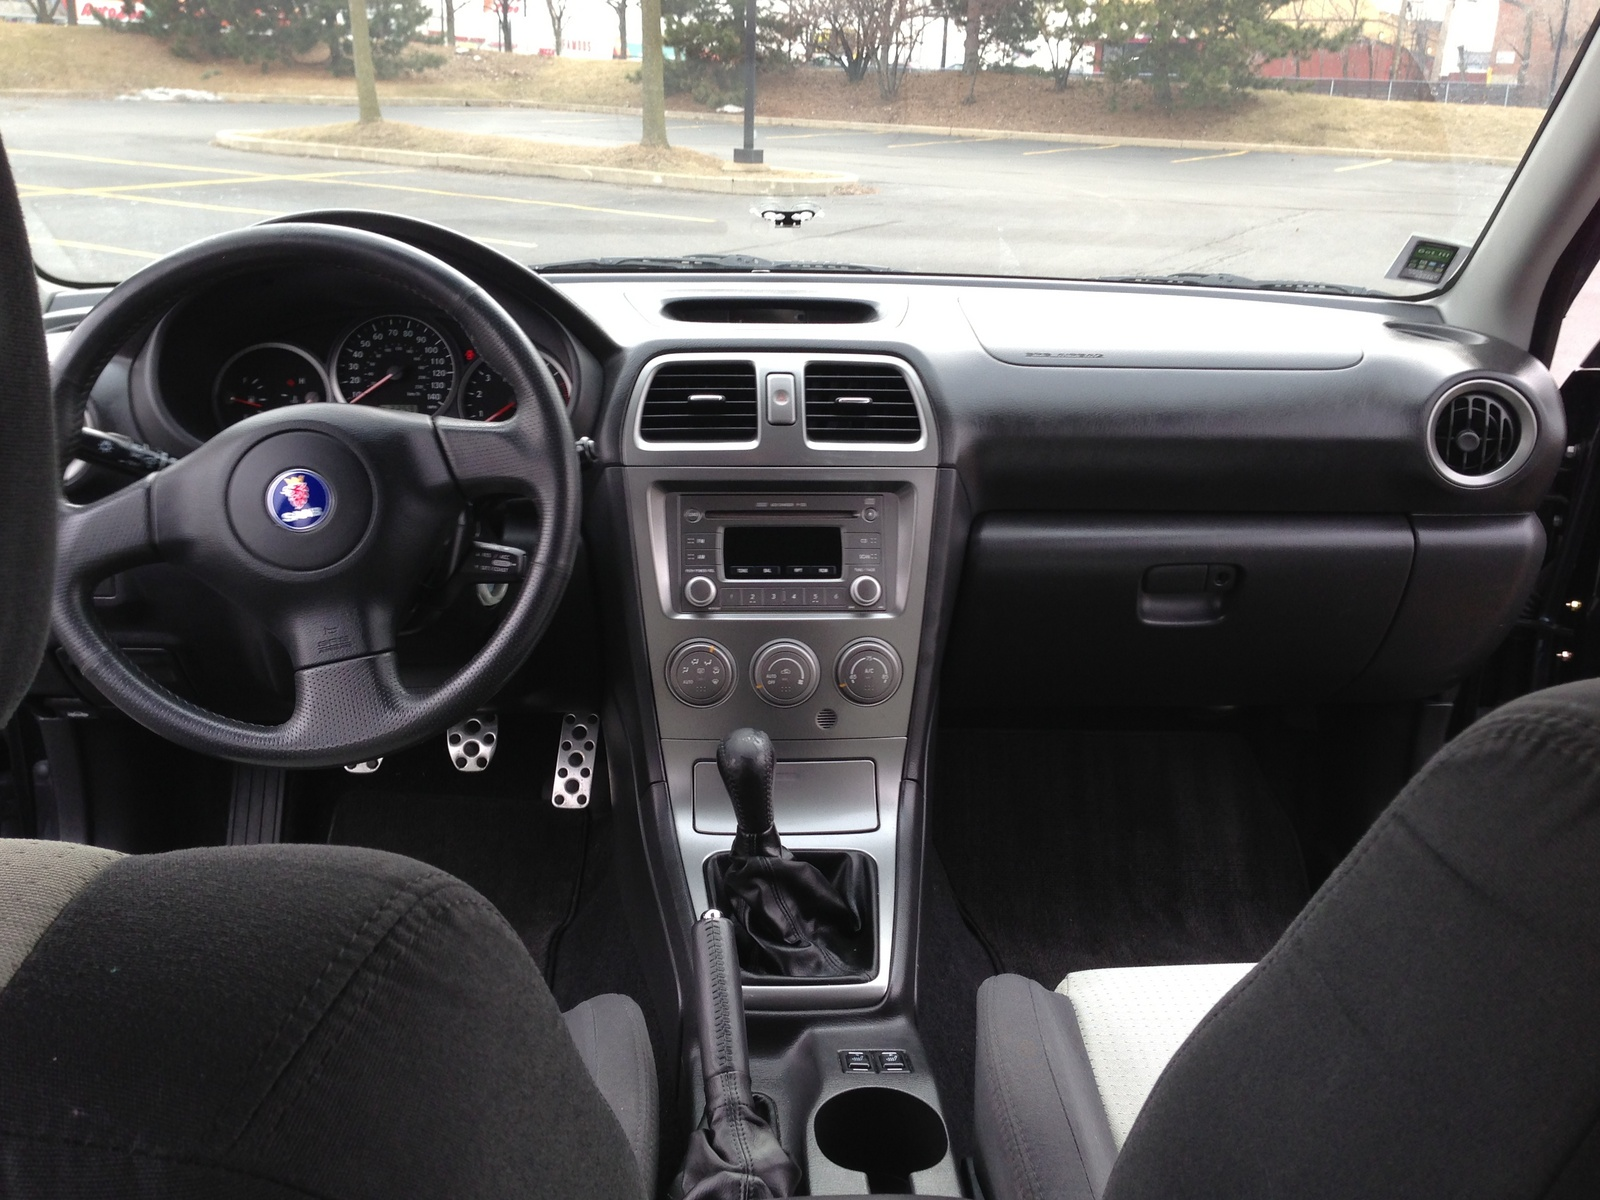 2005 saab 9 2x pictures information and specs auto. Black Bedroom Furniture Sets. Home Design Ideas